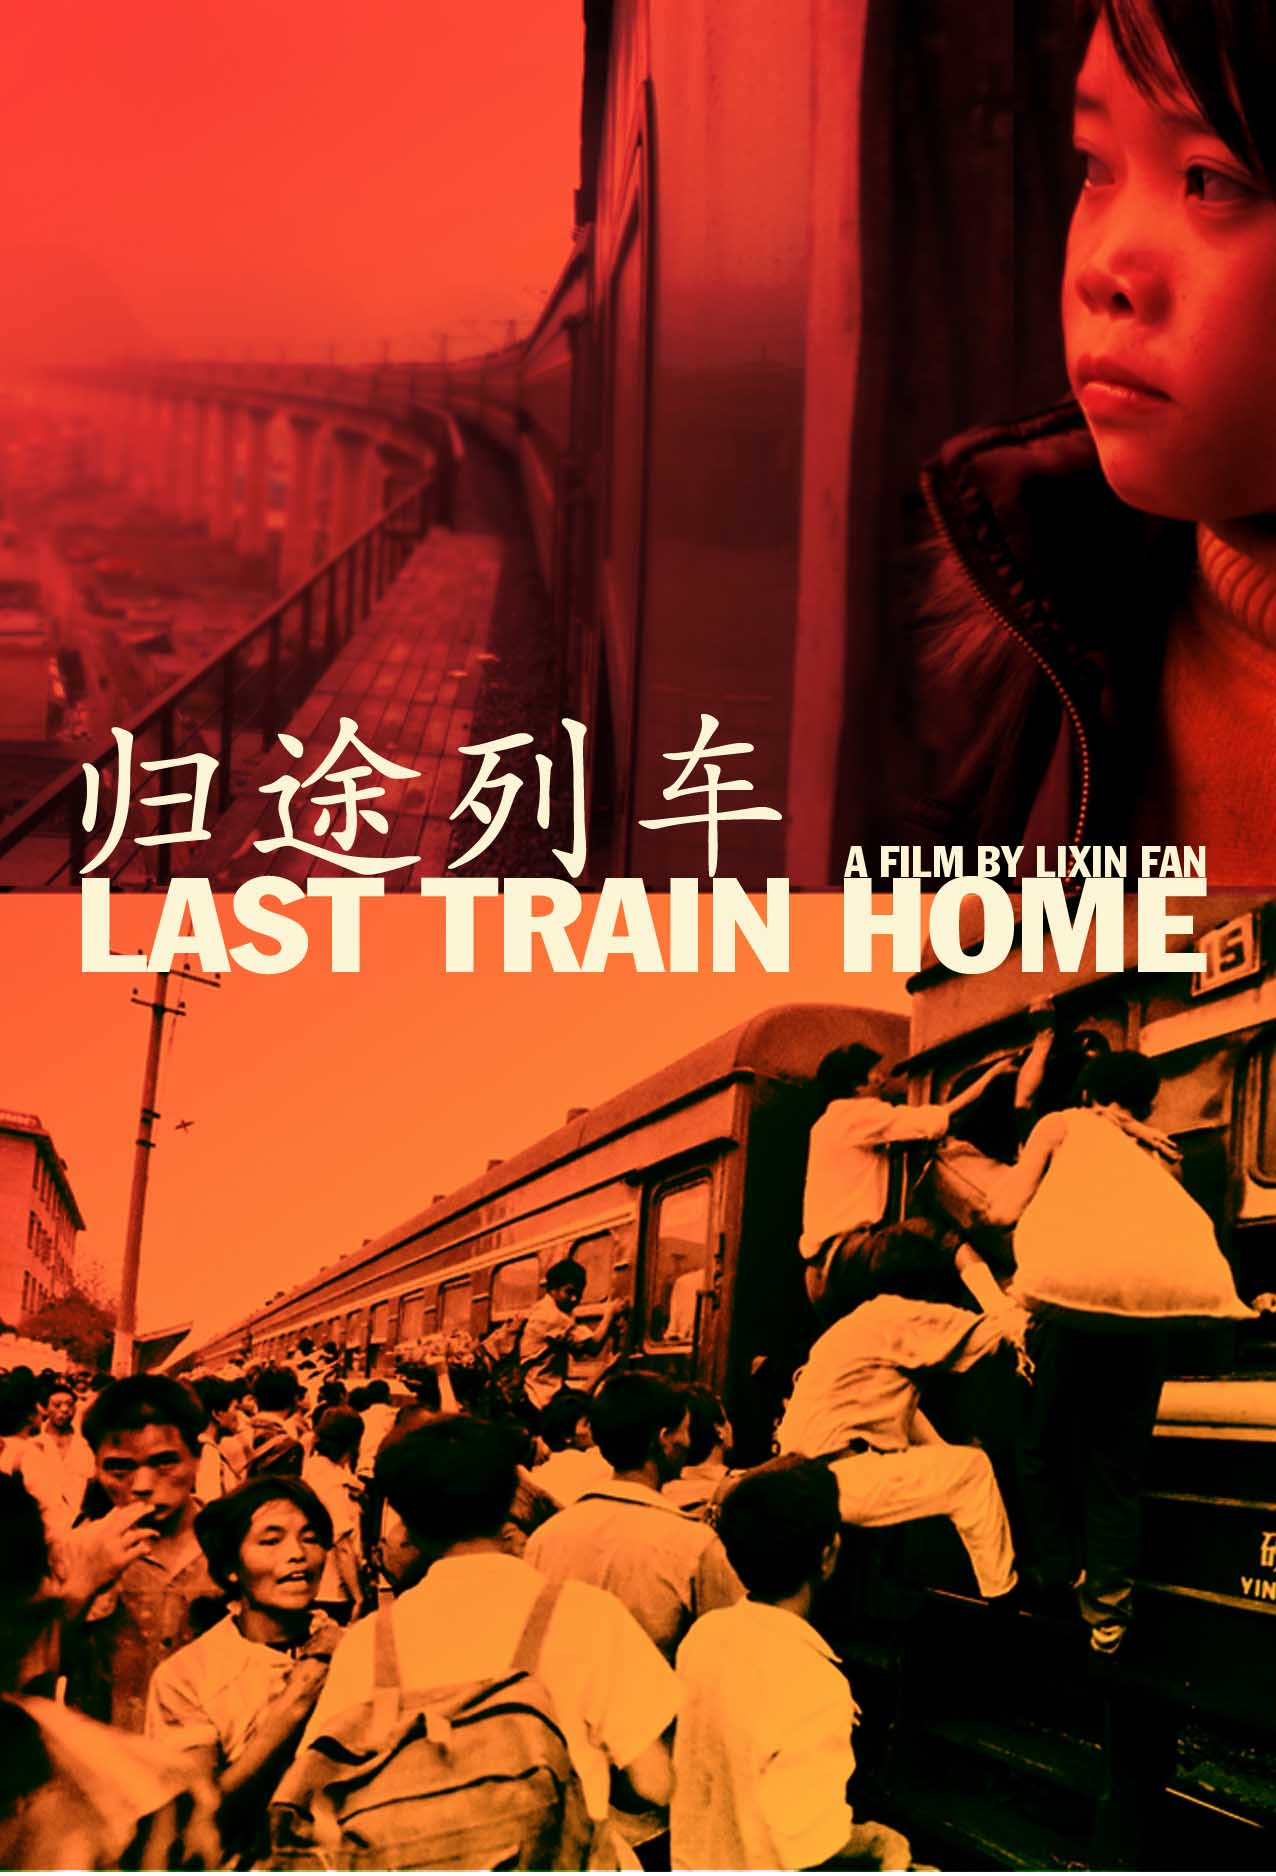 LAST TRAIN HOME film poster